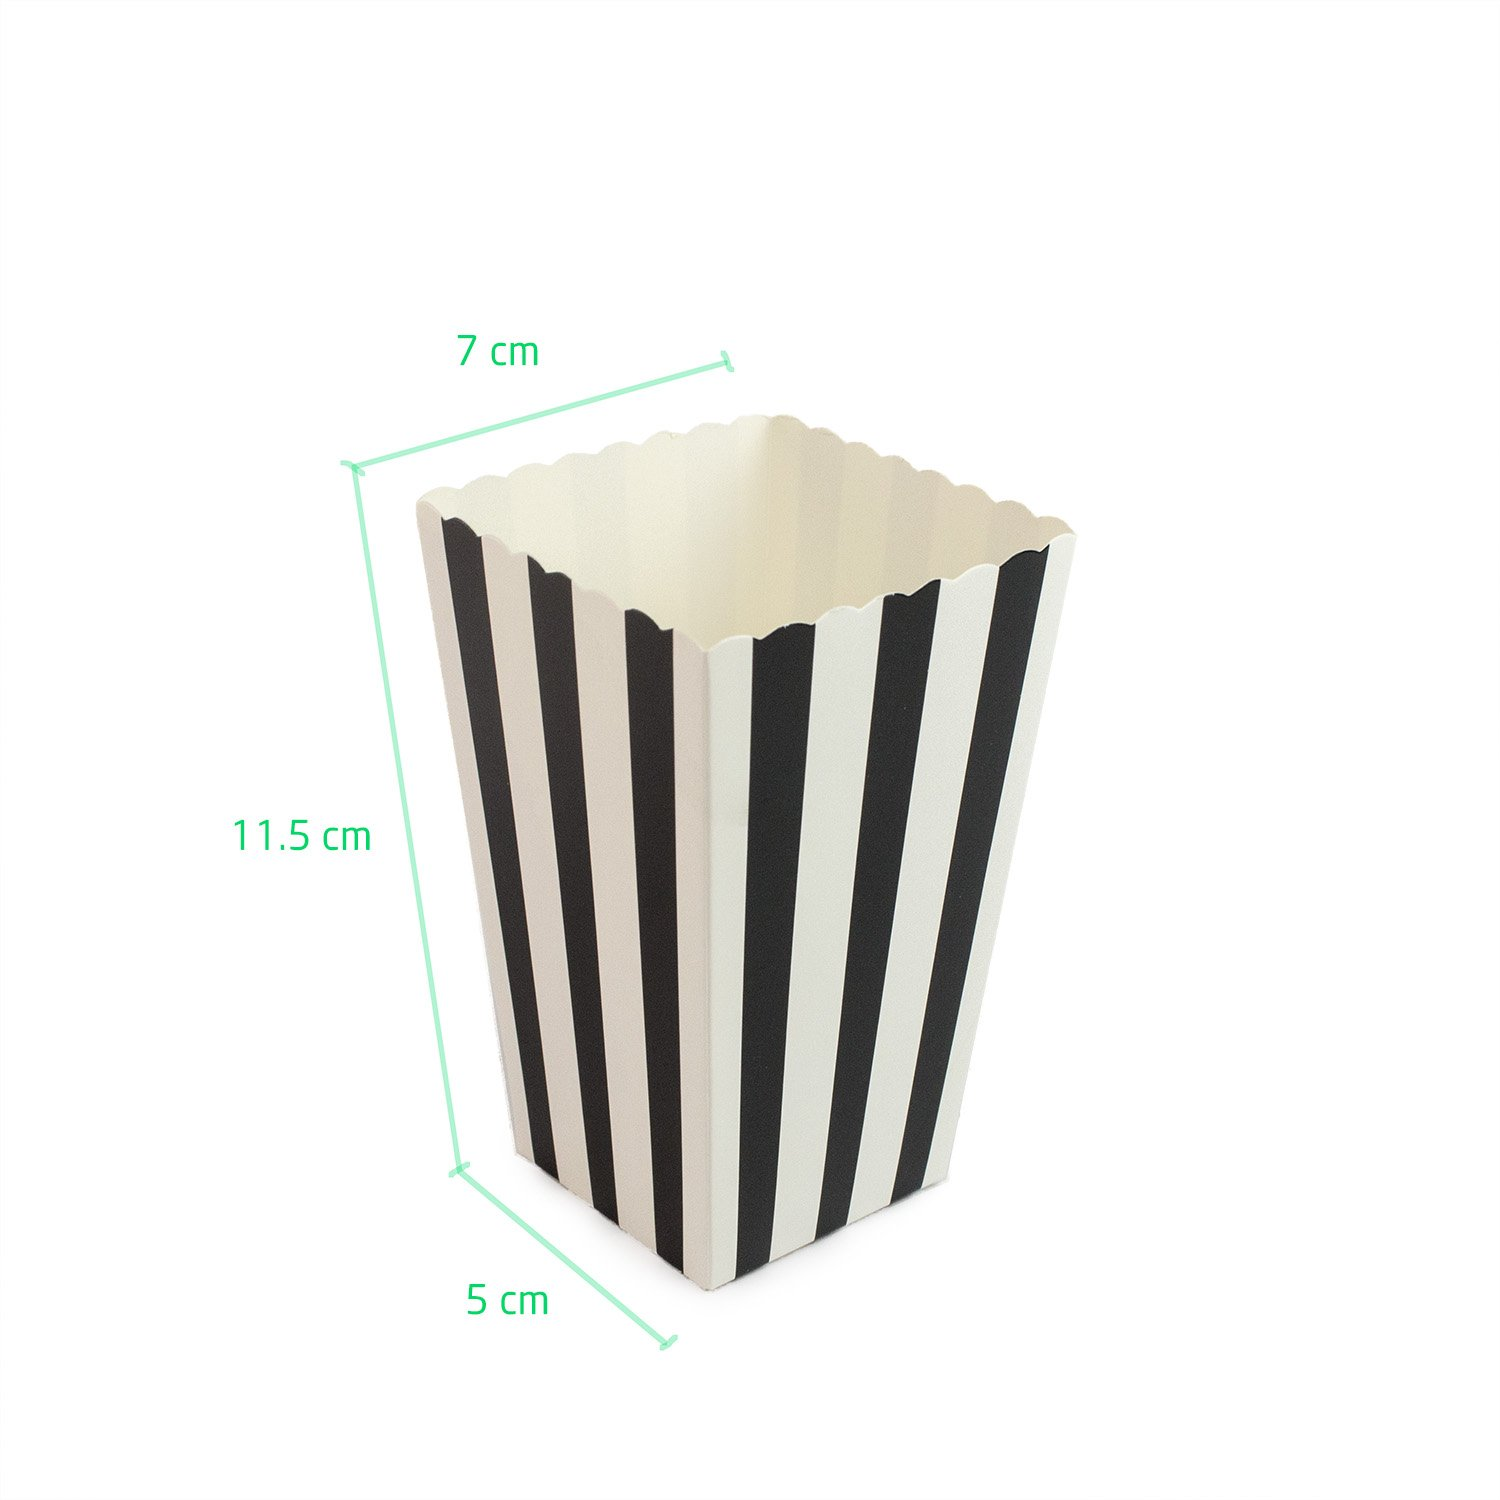 48pcs Popcorn Boxes Gold and Black Chevron Striped Birthday Parties,Carnival Party,Baby Showers,Movie Theater Polka Dot Paper Candy Container for Weddings